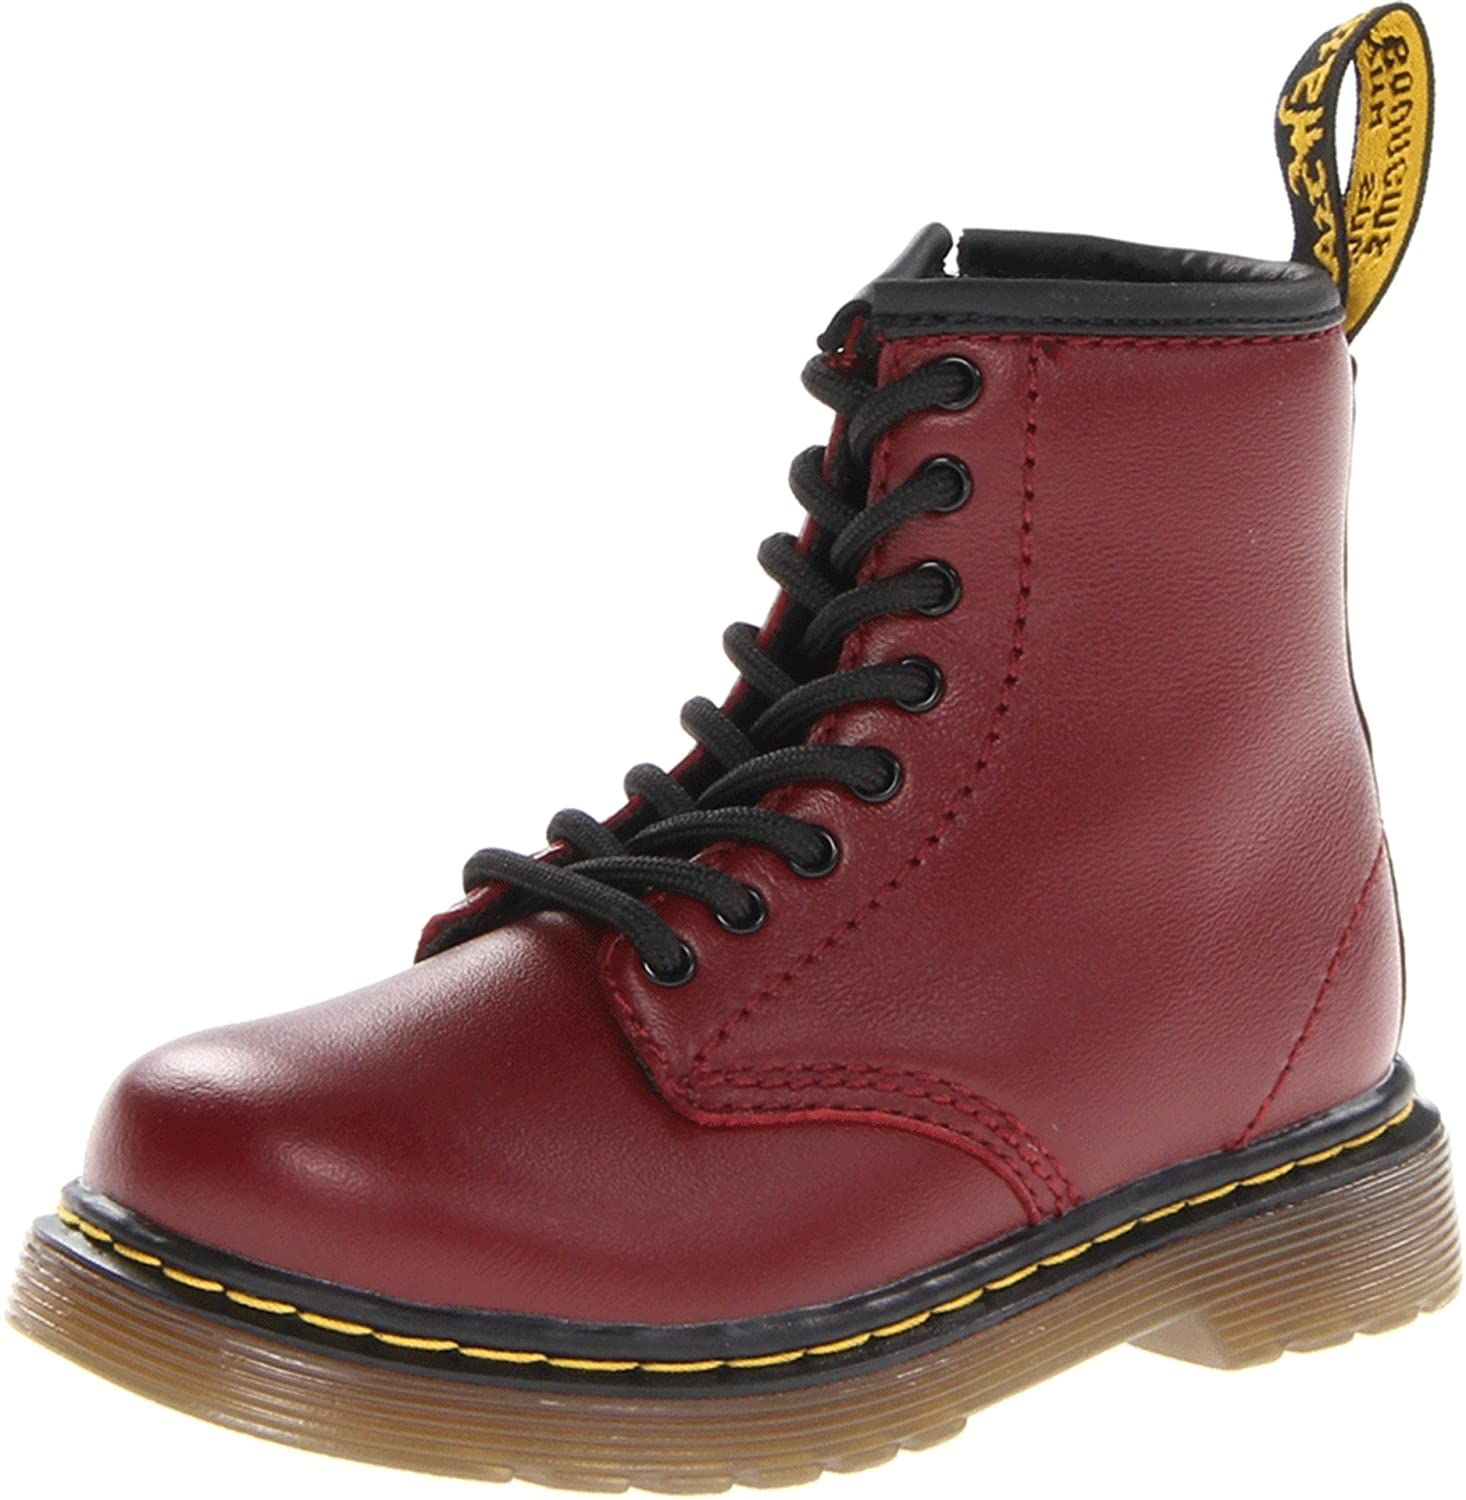 Dr Martens INFANTS Softy T CHERRY RED Zapatos con cordones de cuero